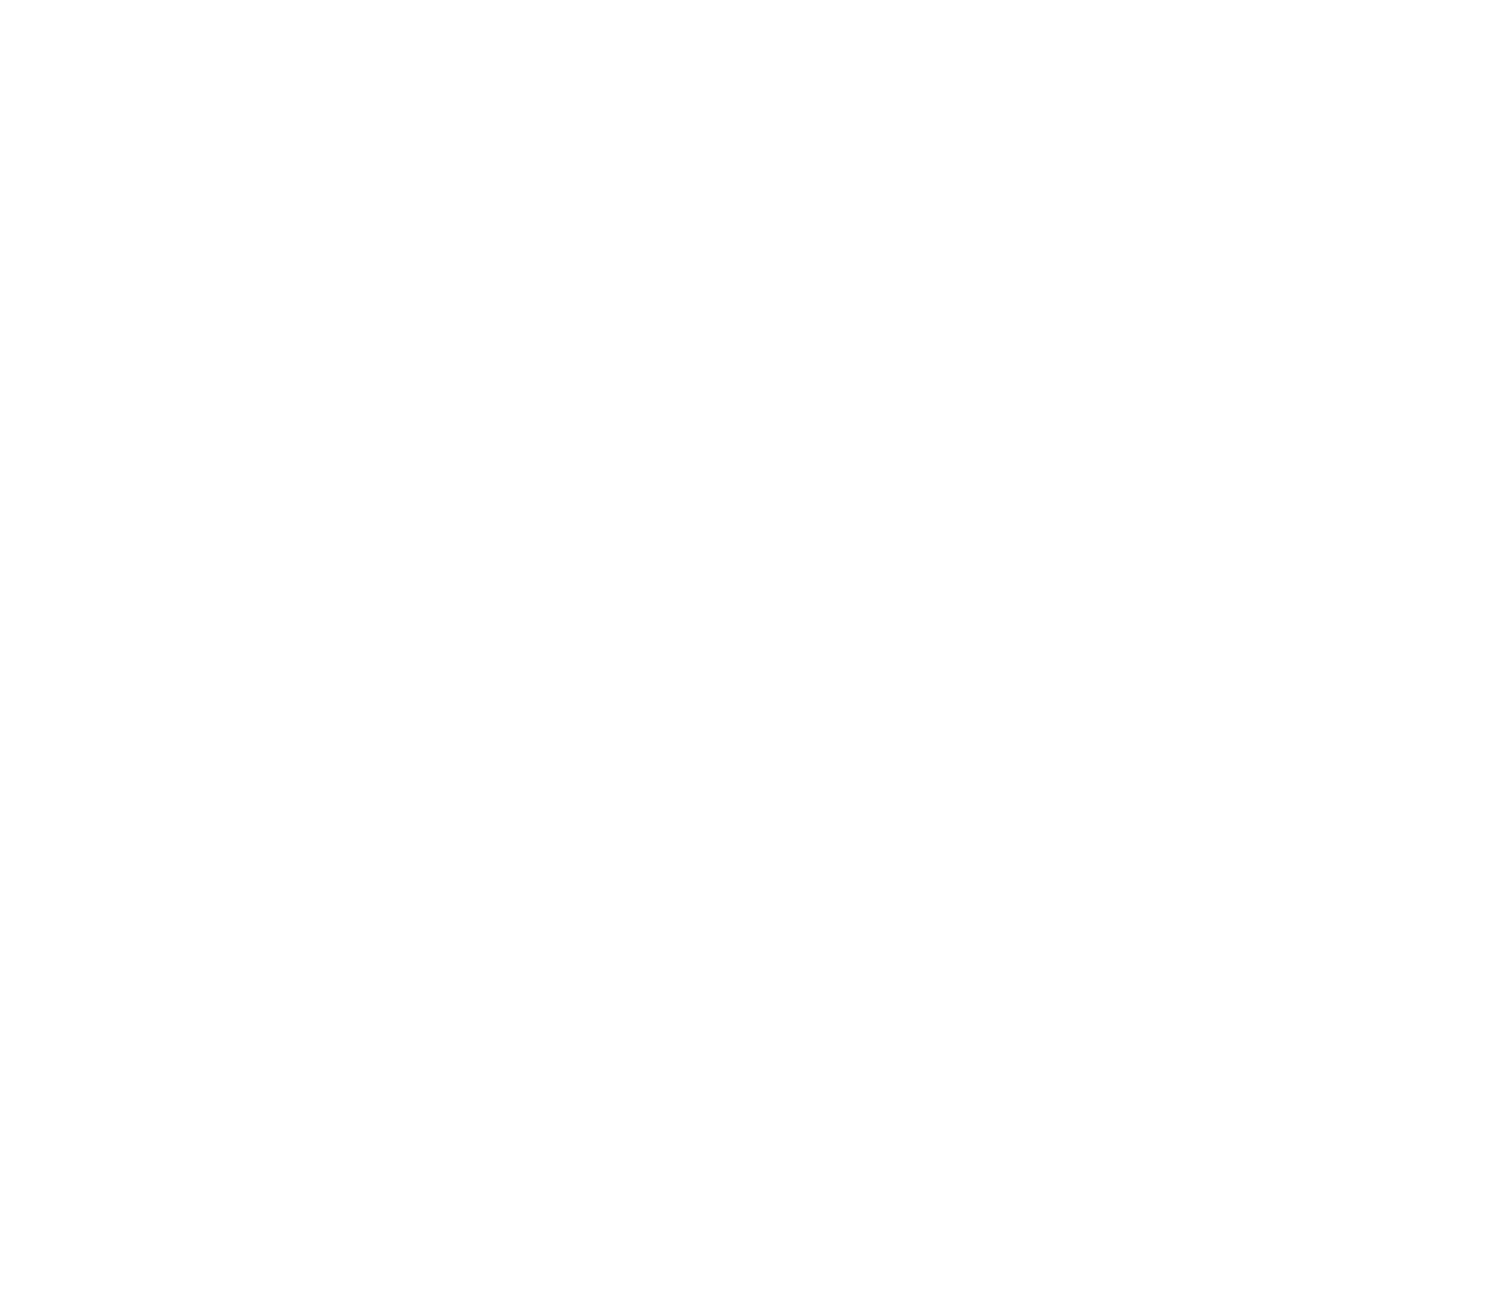 White apple logo png. Grape harvest festival